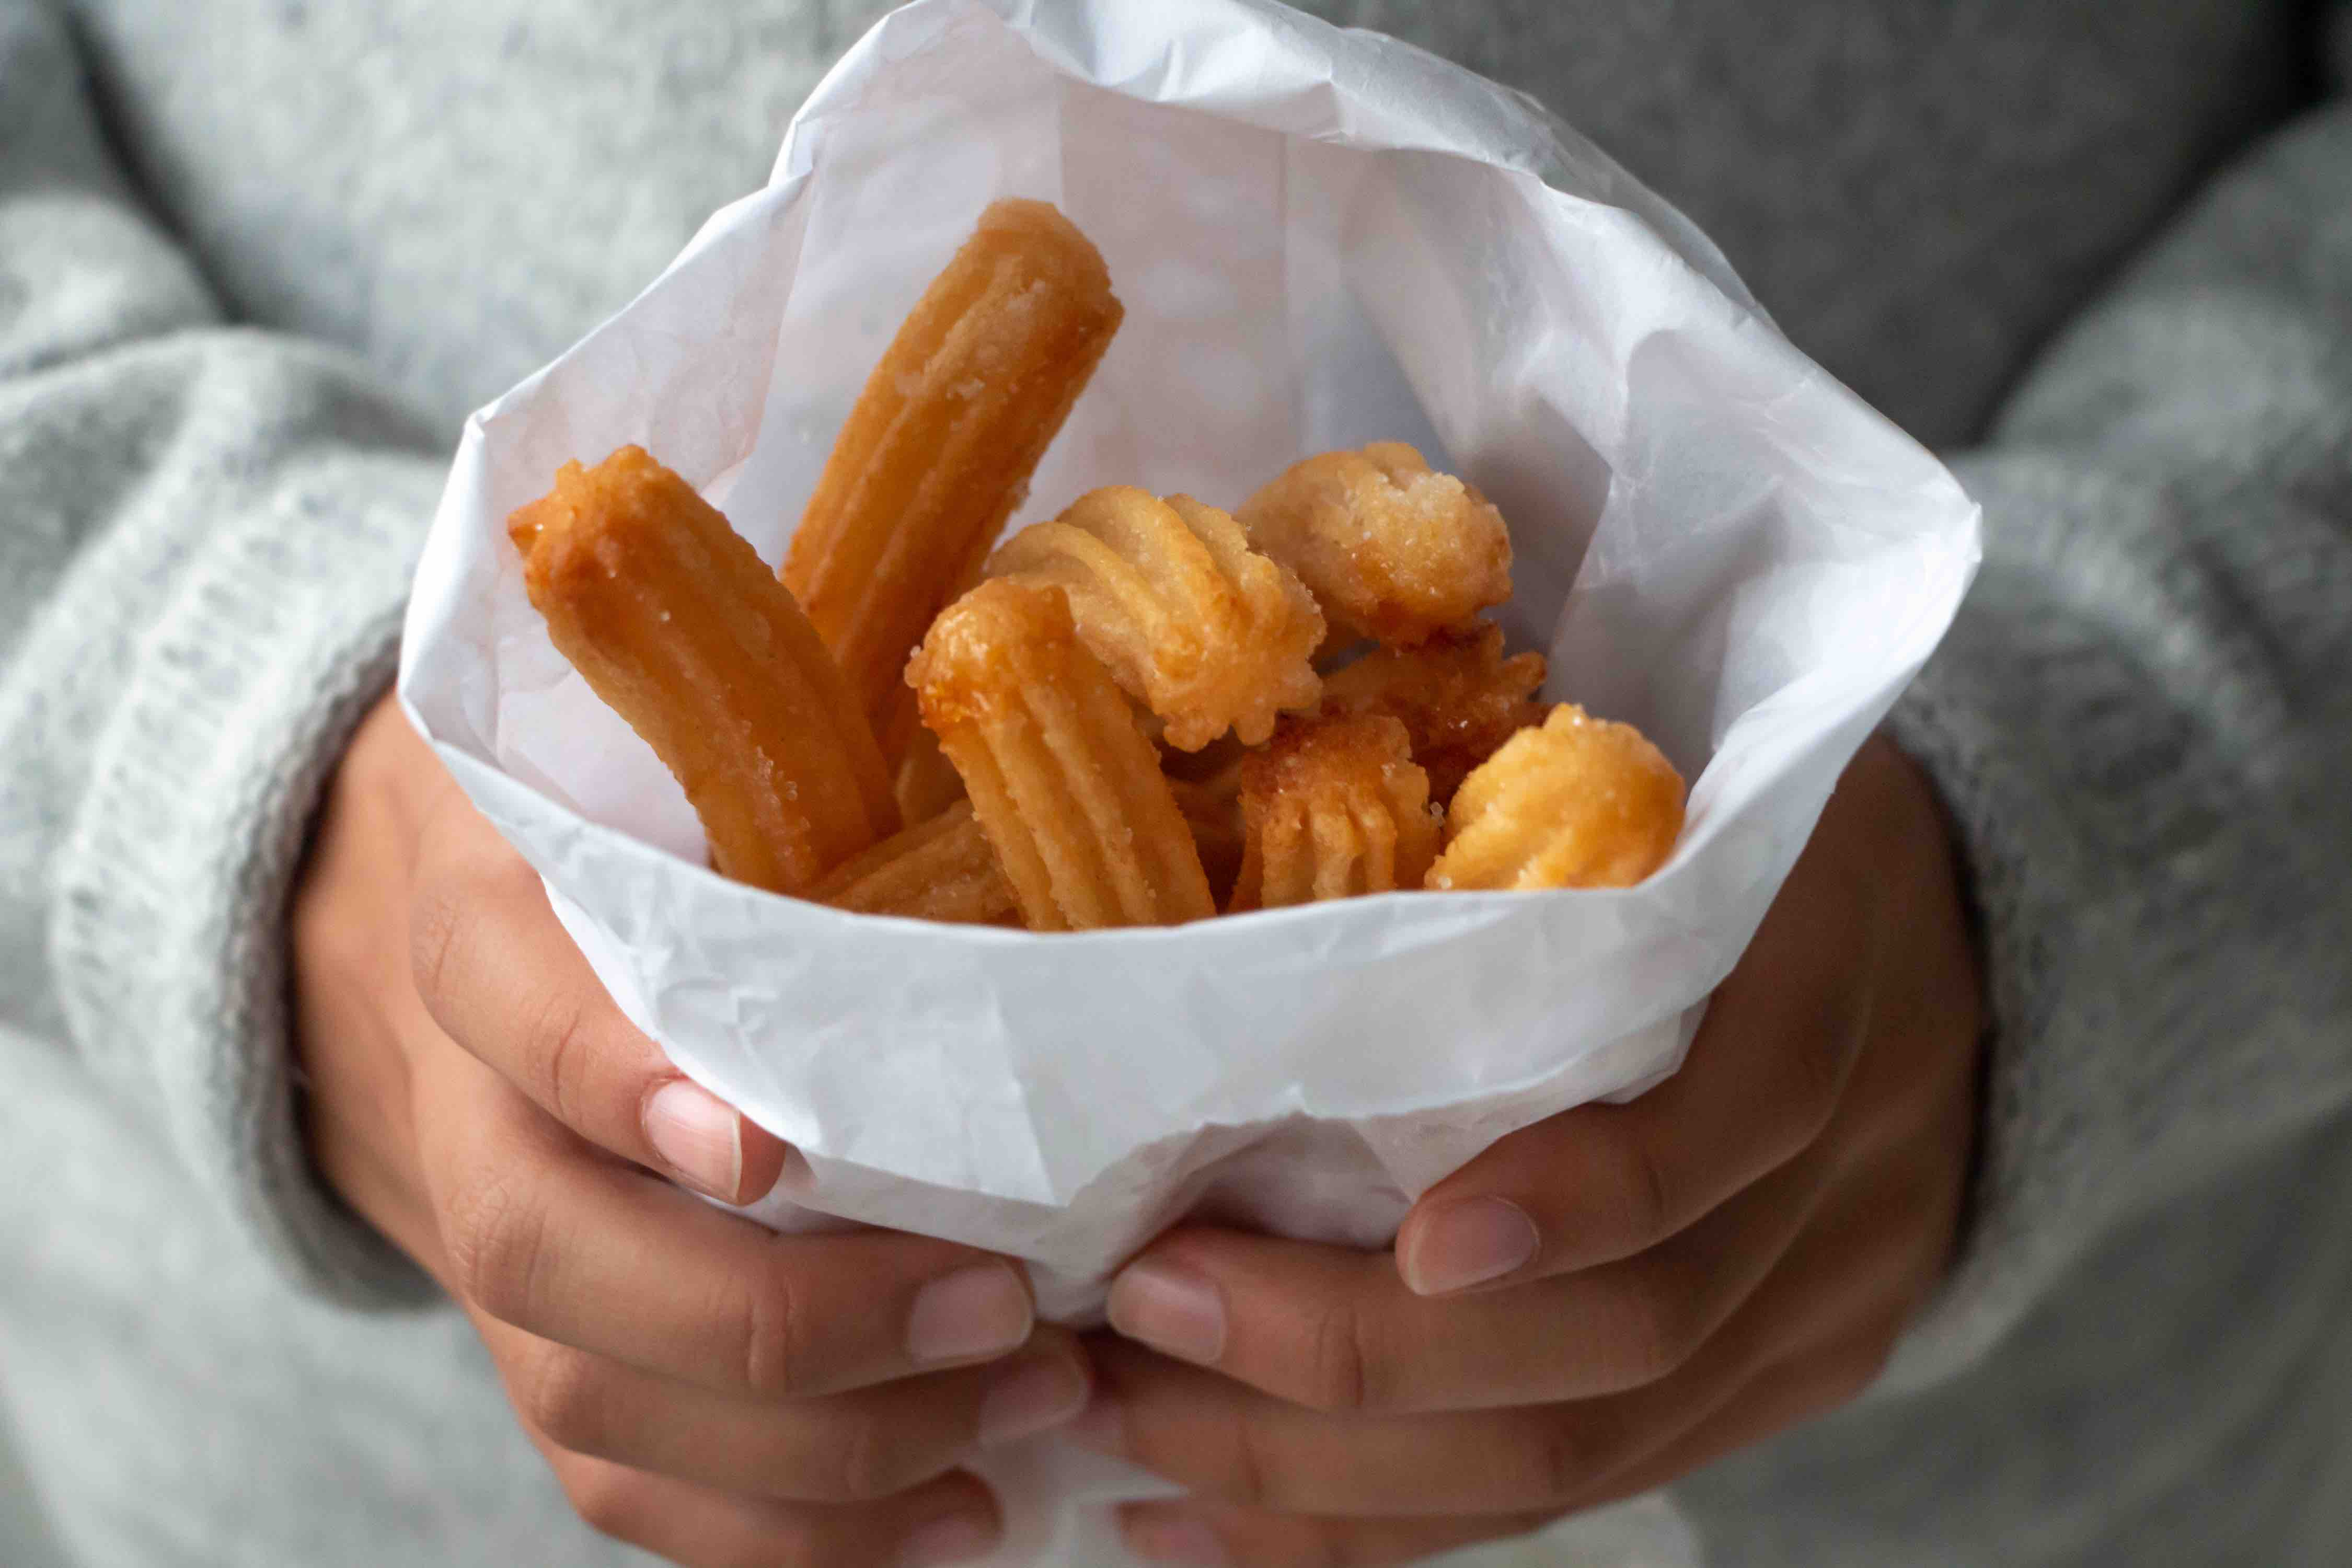 These 10-Year-Olds Raised $8K for Immigrants with a Churro Stand & They Aren't Done Yet